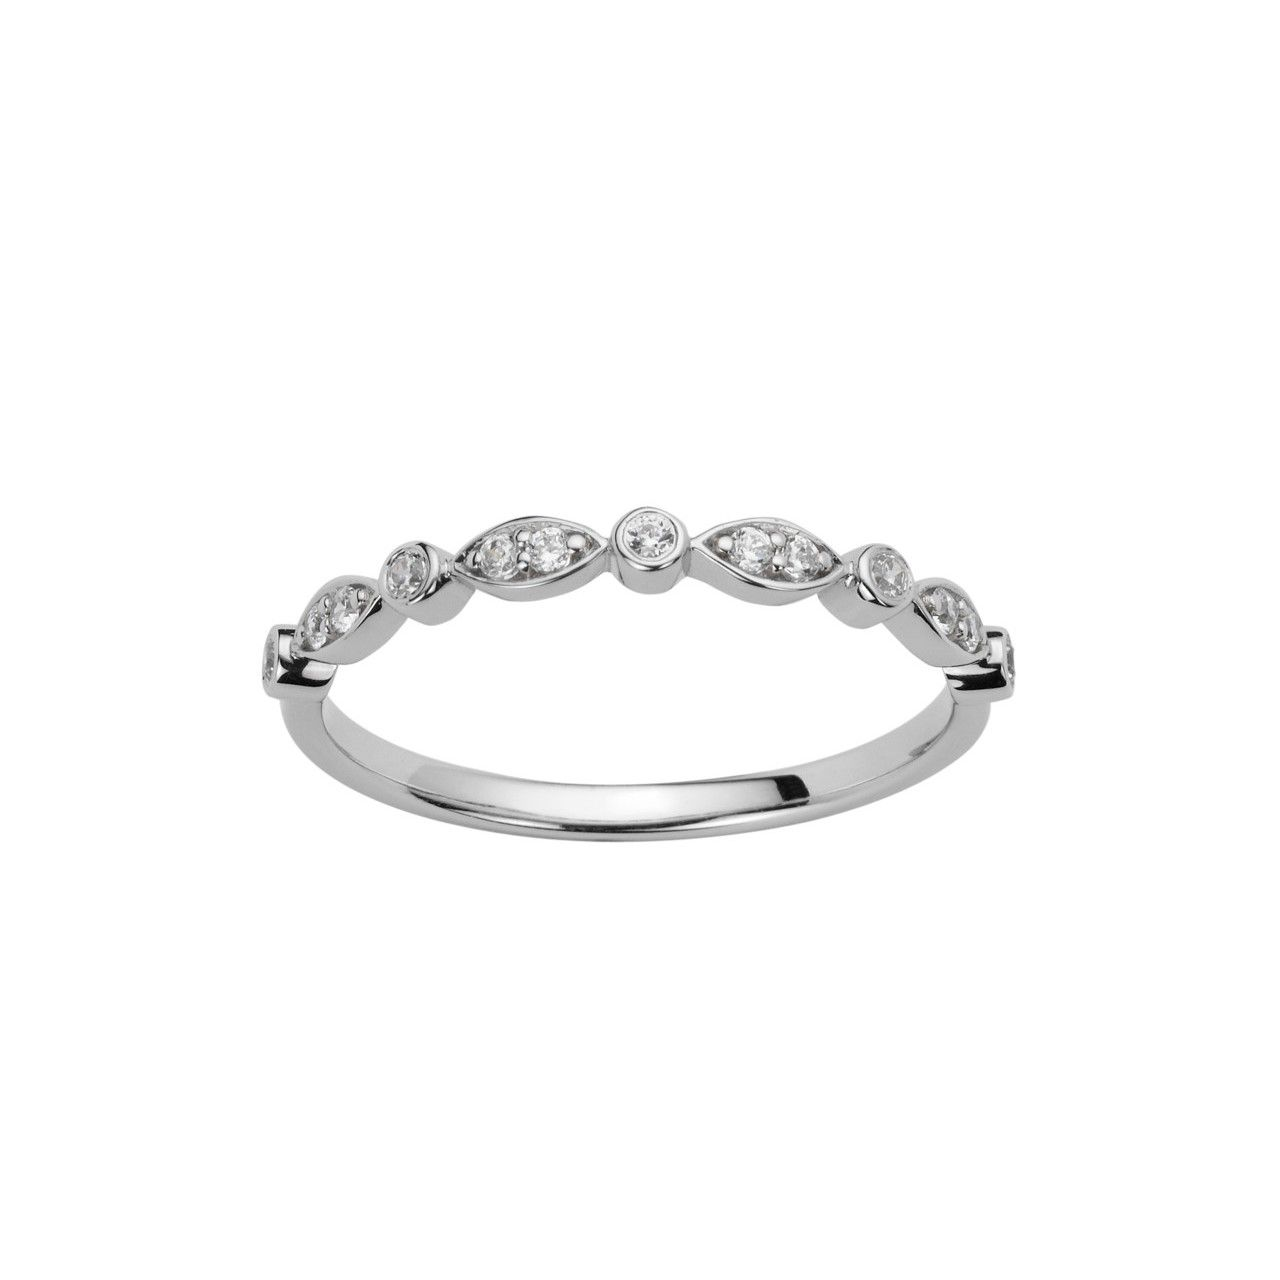 Alliance en or blanc et diamants de 0.13ct vue 1